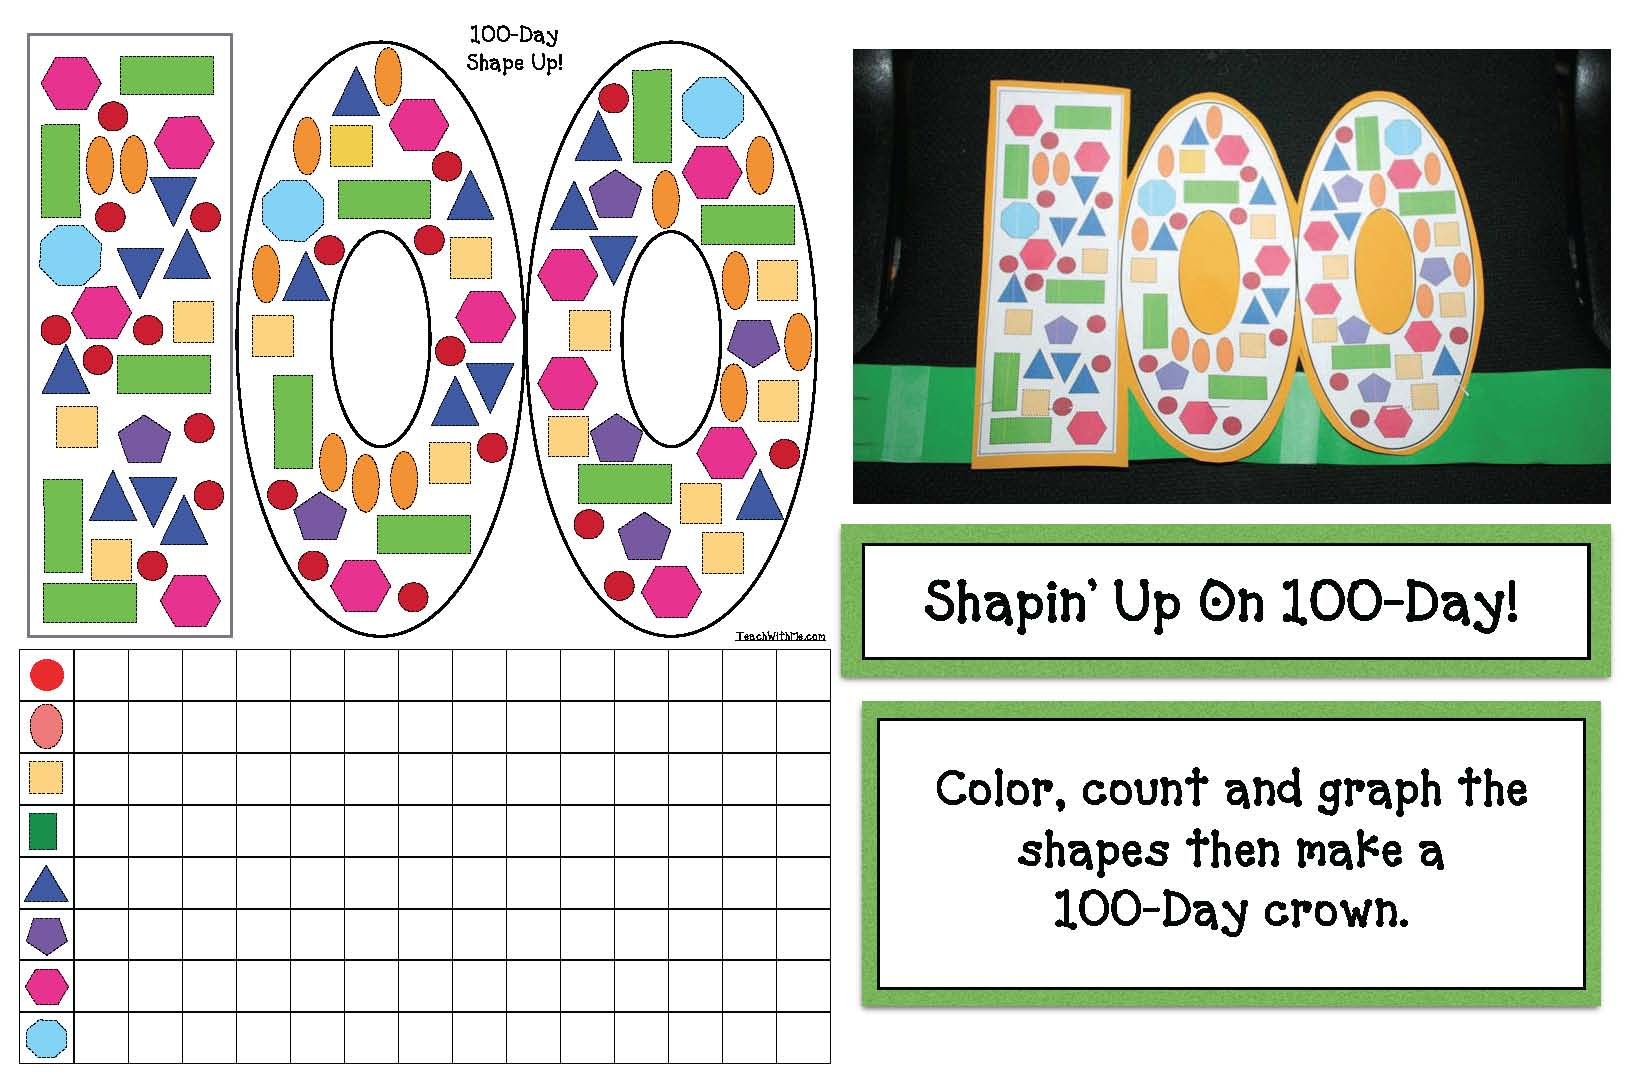 fill in the blank 100 charts, 100 chart pattern, 100 chart template, traceable 100 chart, odd numbered 100 chart, even numbered 100 chart, 100 chart puzzles, empty 100 chart, blank 100 chart, graphing activities, graphing shapes, shape activities, 100 day activities, 100 day games, 100 day puzzles, 100 day lessons, 100 day ideas, 100 day games, 100 day centers, tally mark activities, apple activities, counting to 100, 100 day crafts, 100 day crowns, fun ways to count to 100, 100 tally mark activities, tally mark ideas